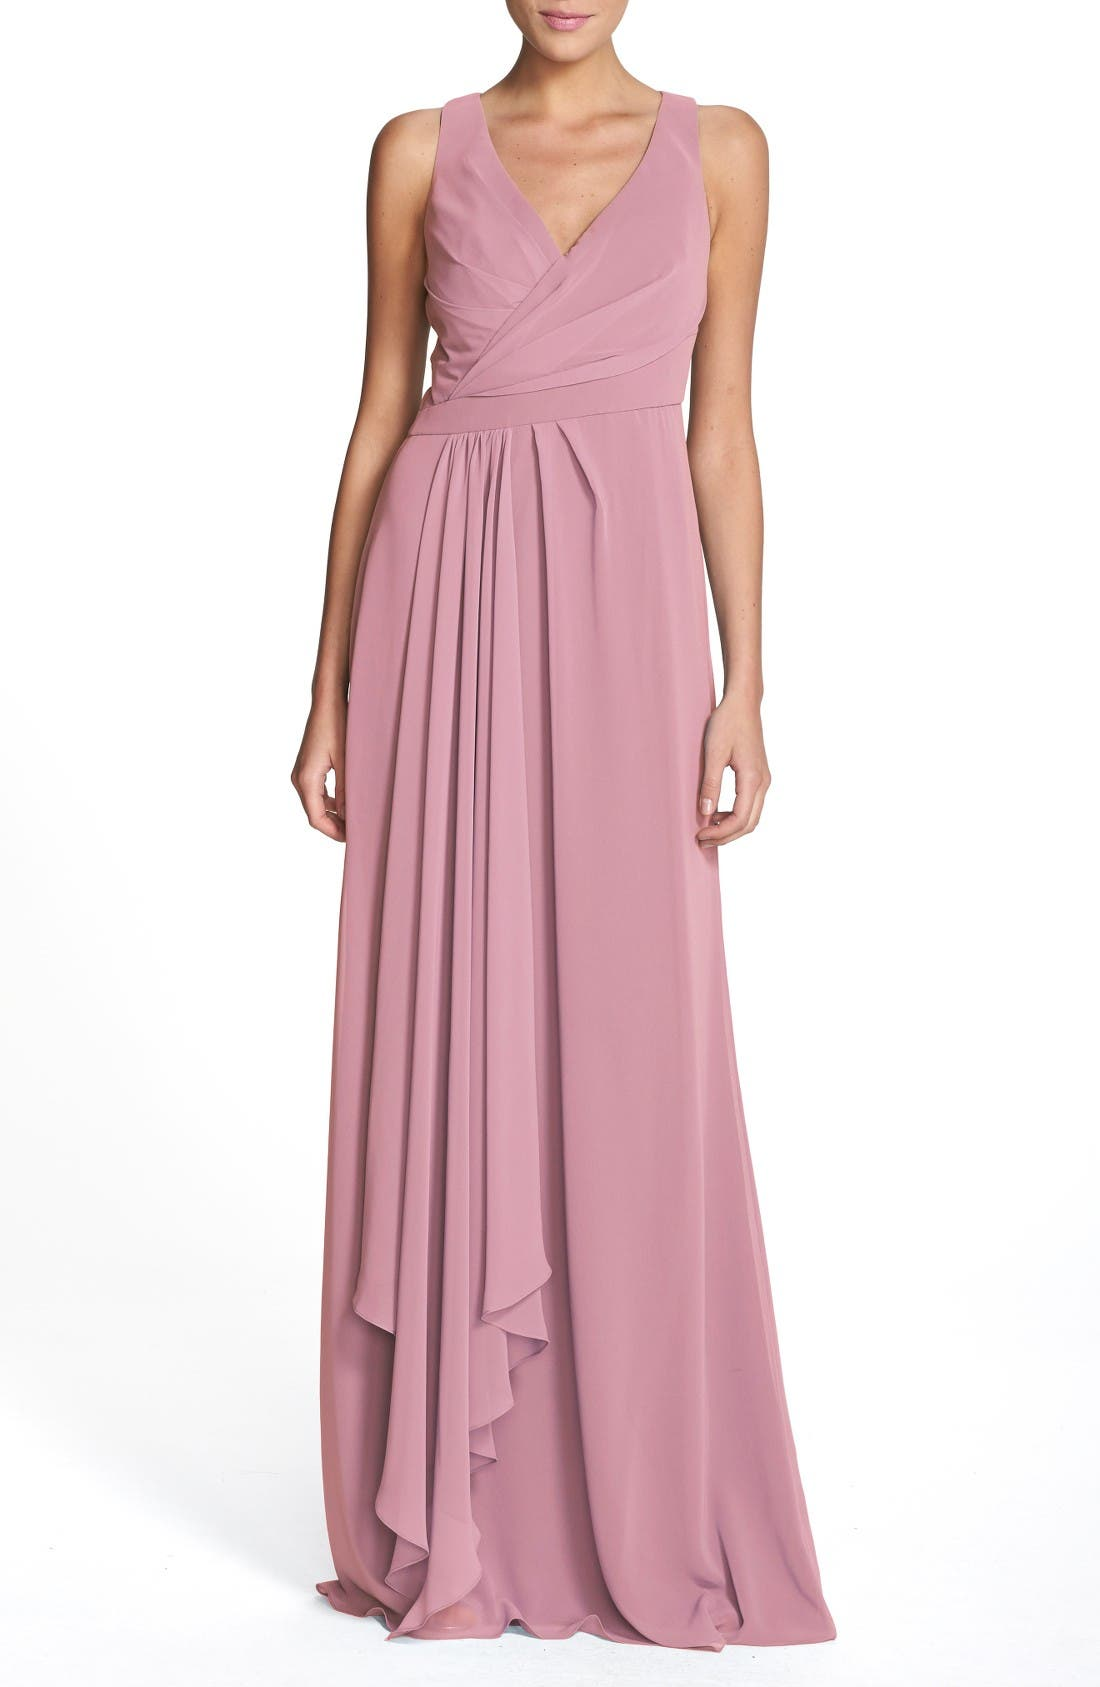 Alternate Image 1 Selected - Monique Lhuillier Bridesmaids Sleeveless V-Neck Chiffon Gown (Nordstrom Exclusive)